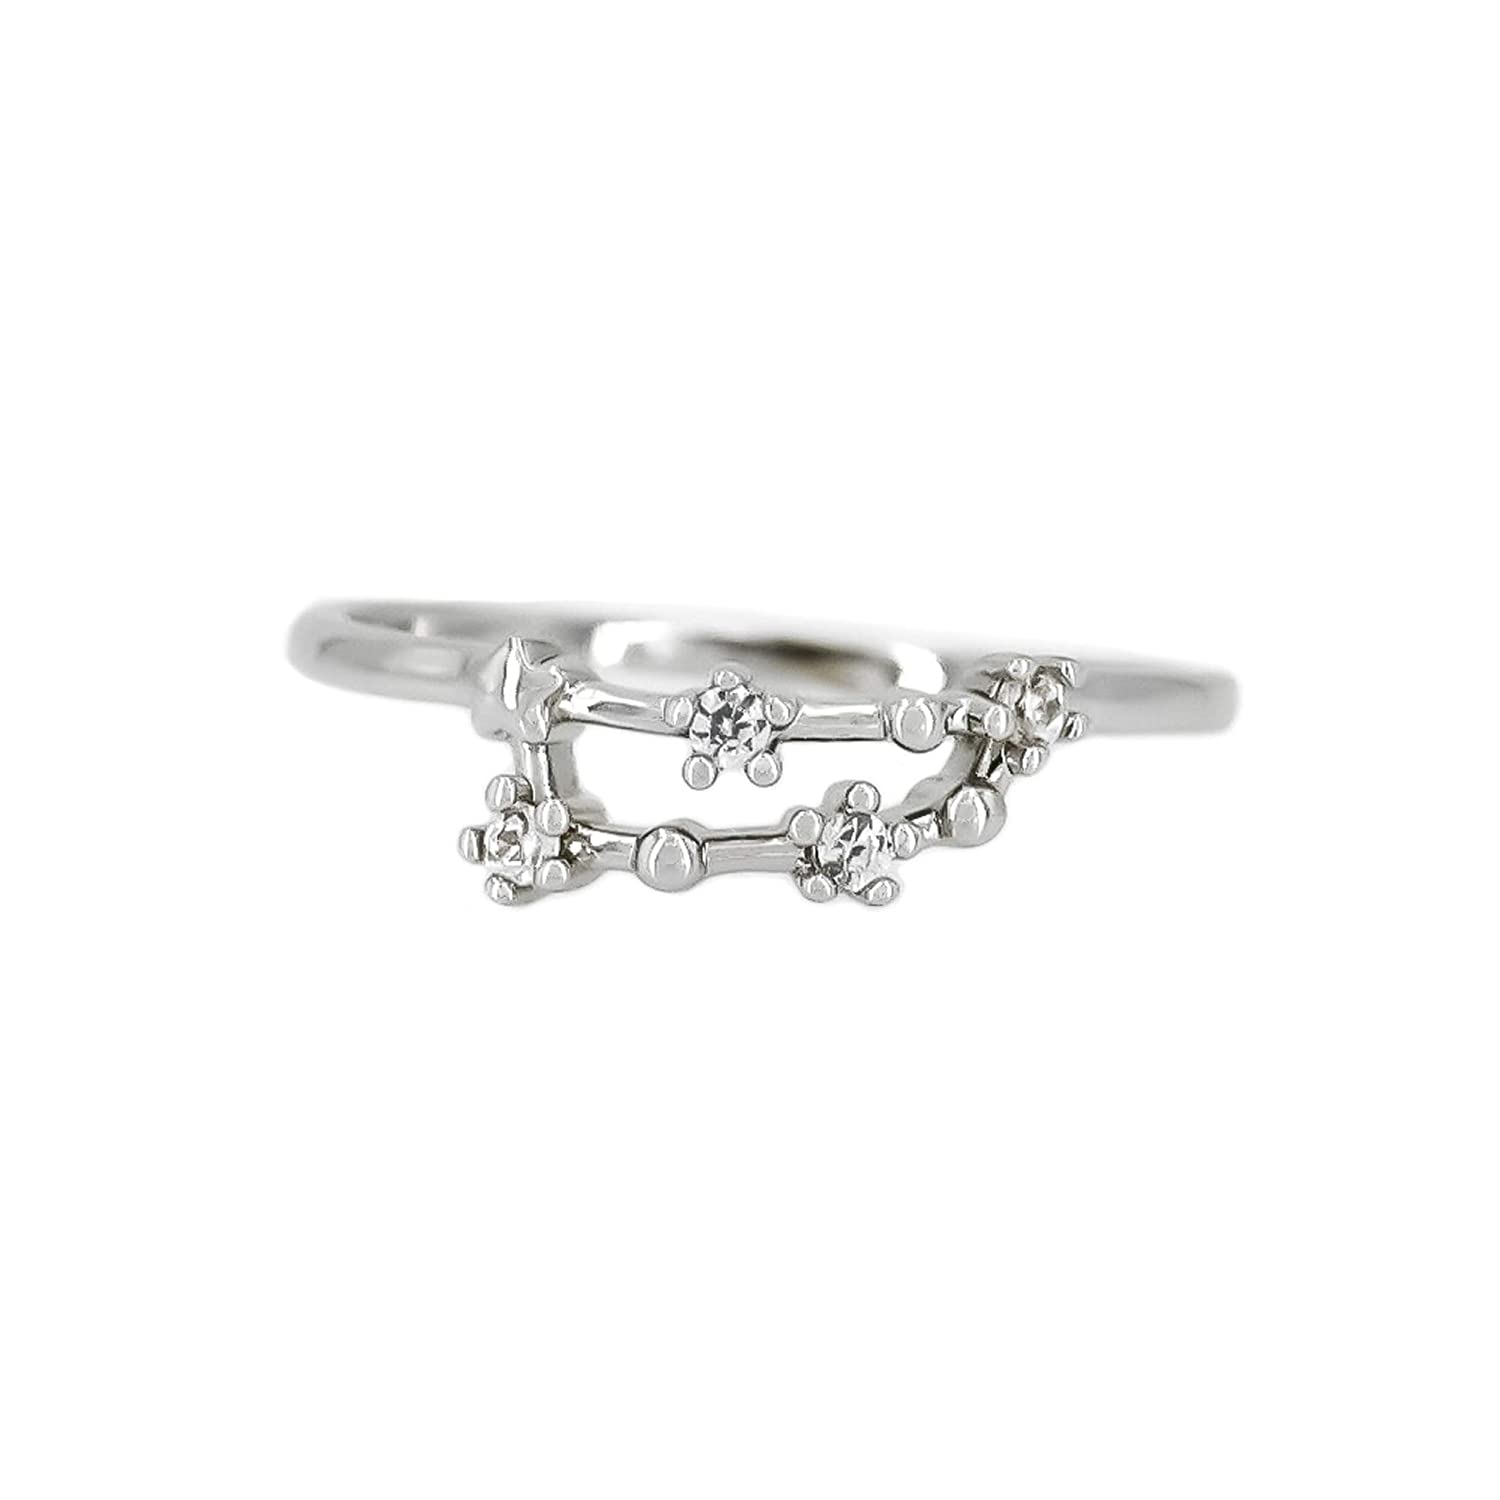 Zodiac Constellation Ring with Cubic Zirconia Stones Made of Zinc, Steel & Brass. Birthday Gift. Choice by Choi